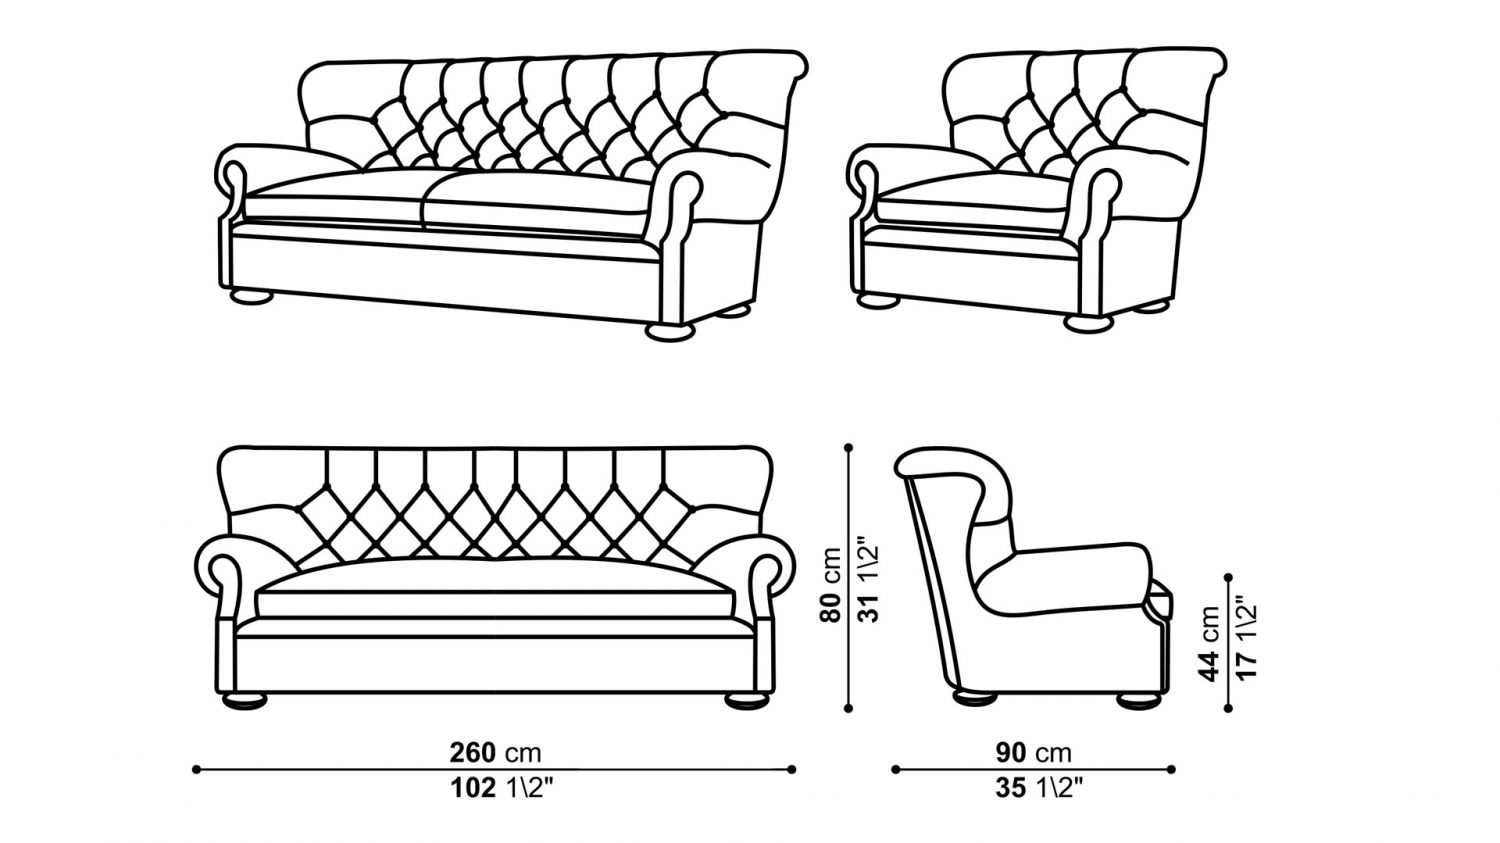 3D Wireframe Modeling for Sofa and Armchair